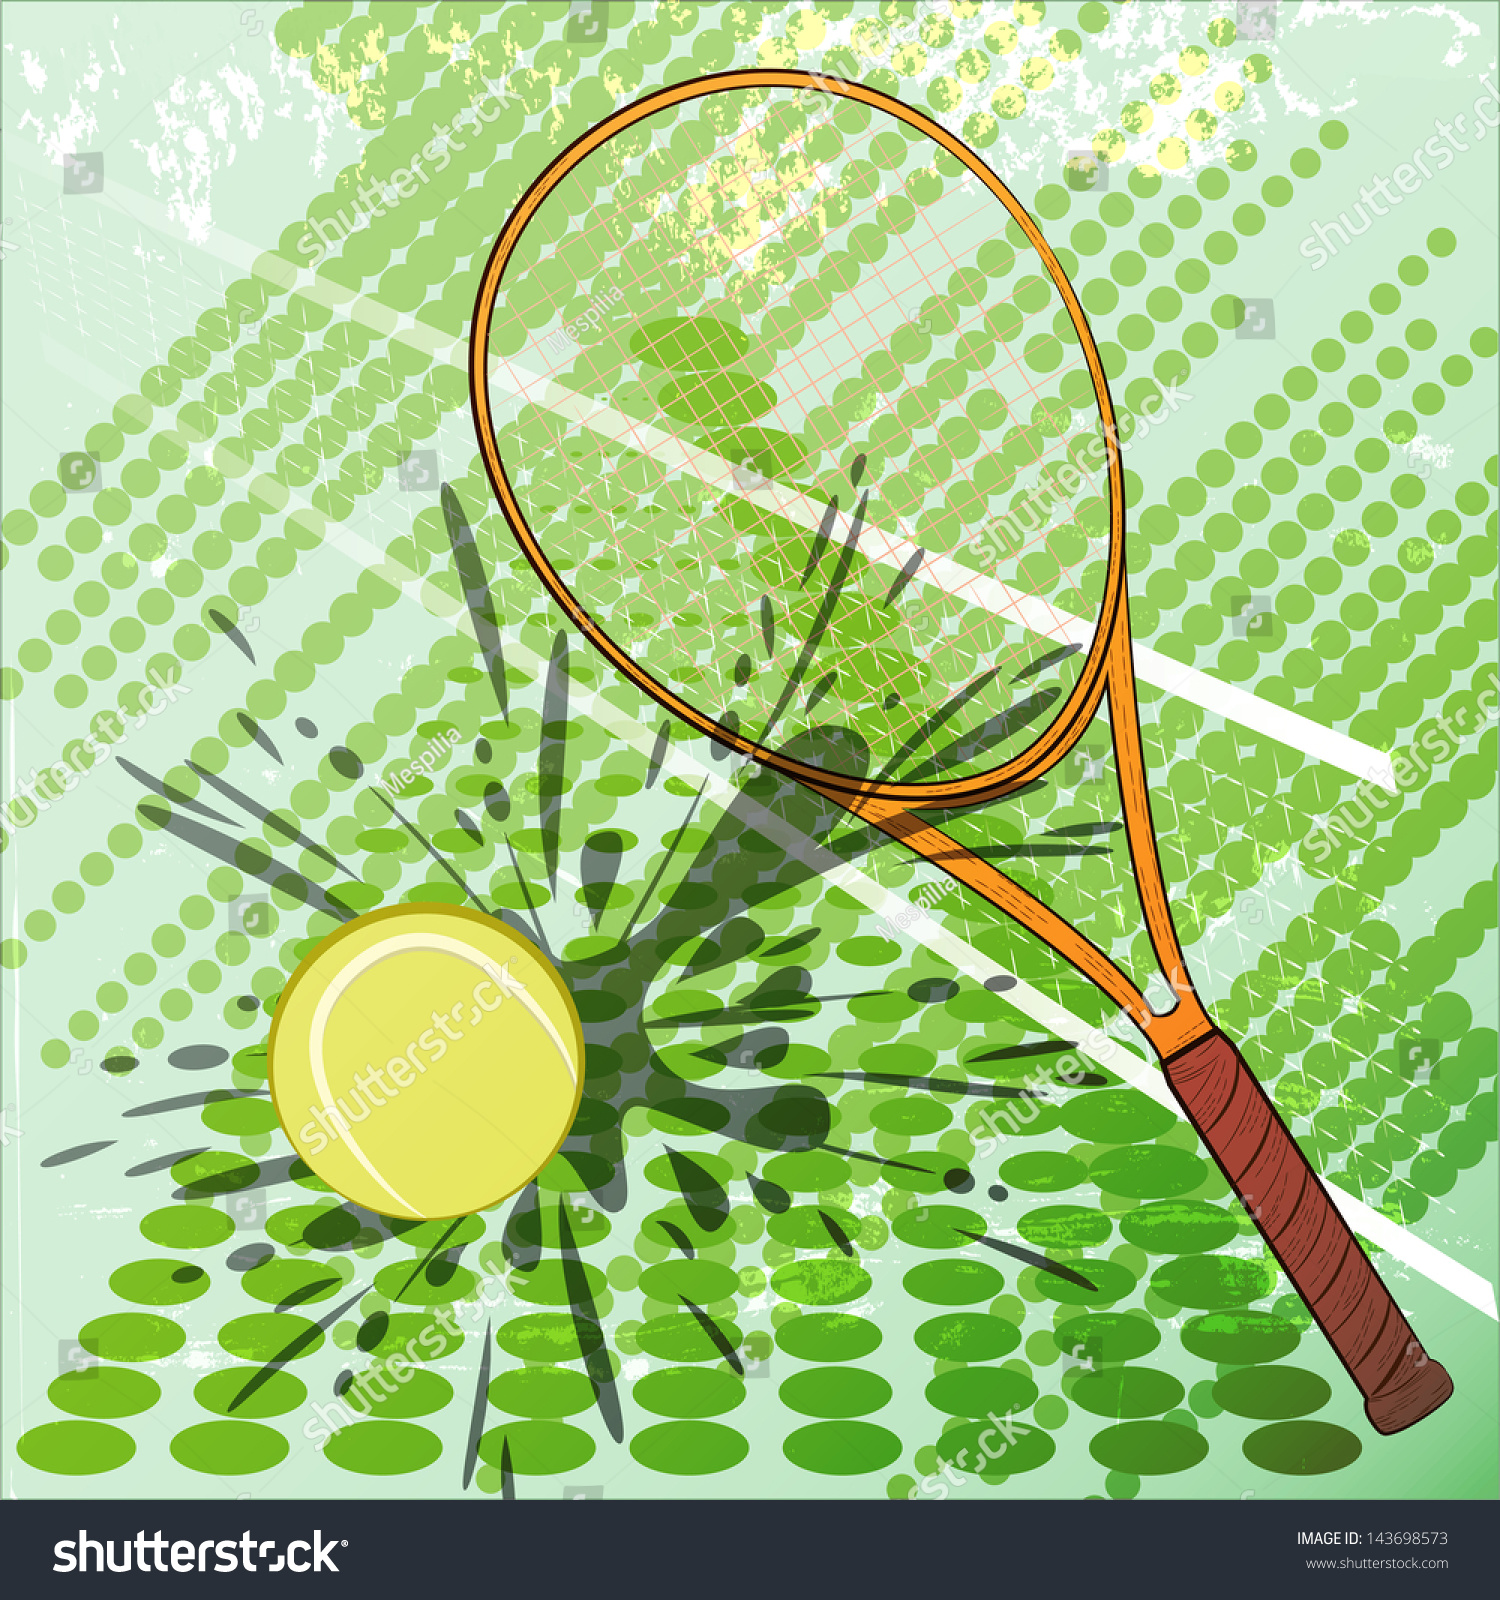 Tennis Card Vector Illustration Can Be Stock Vector 143698573